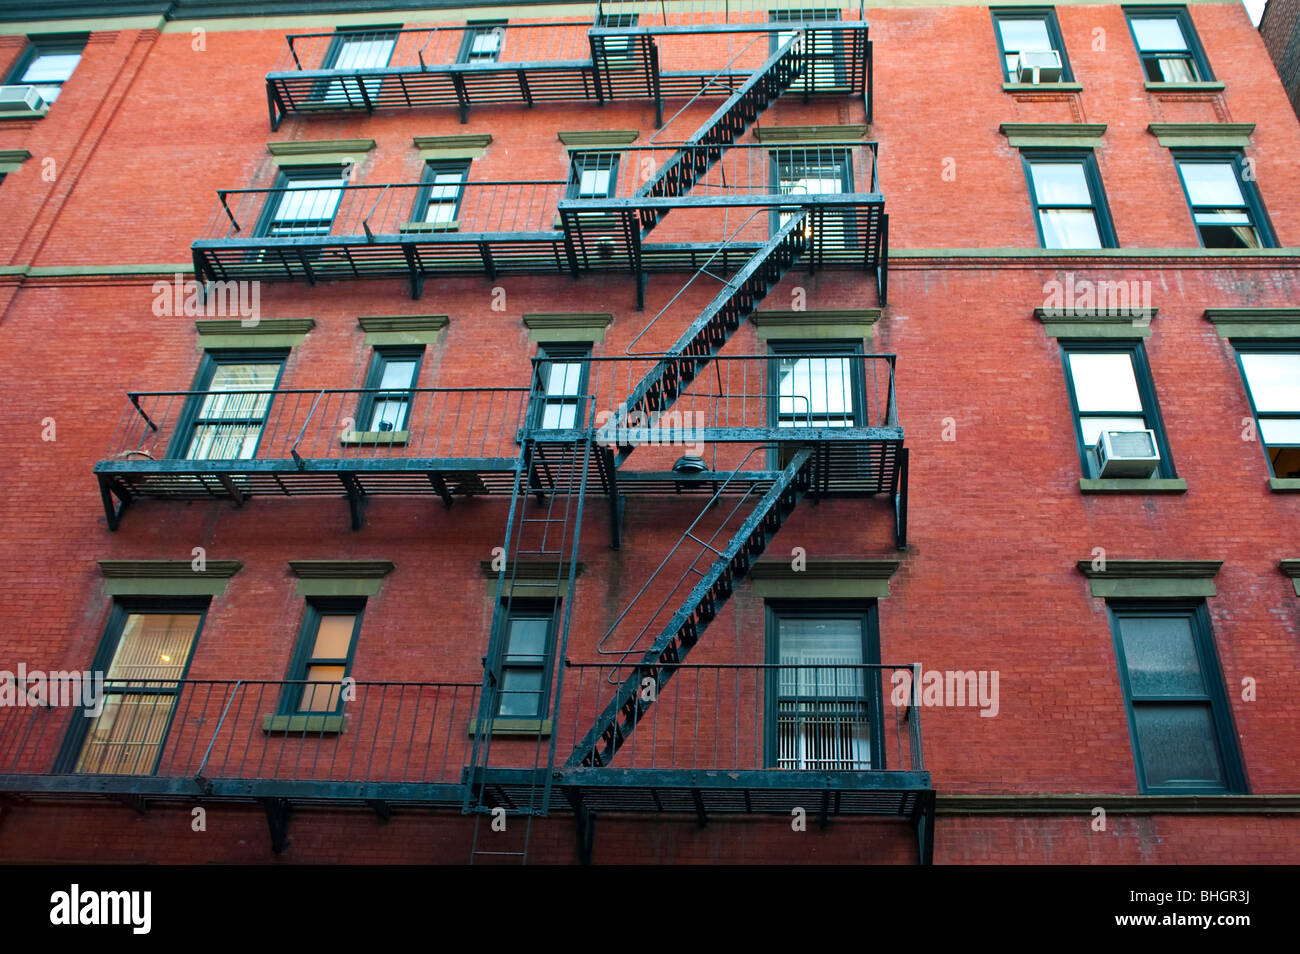 Old Brick Apartment Buildings In A Big City